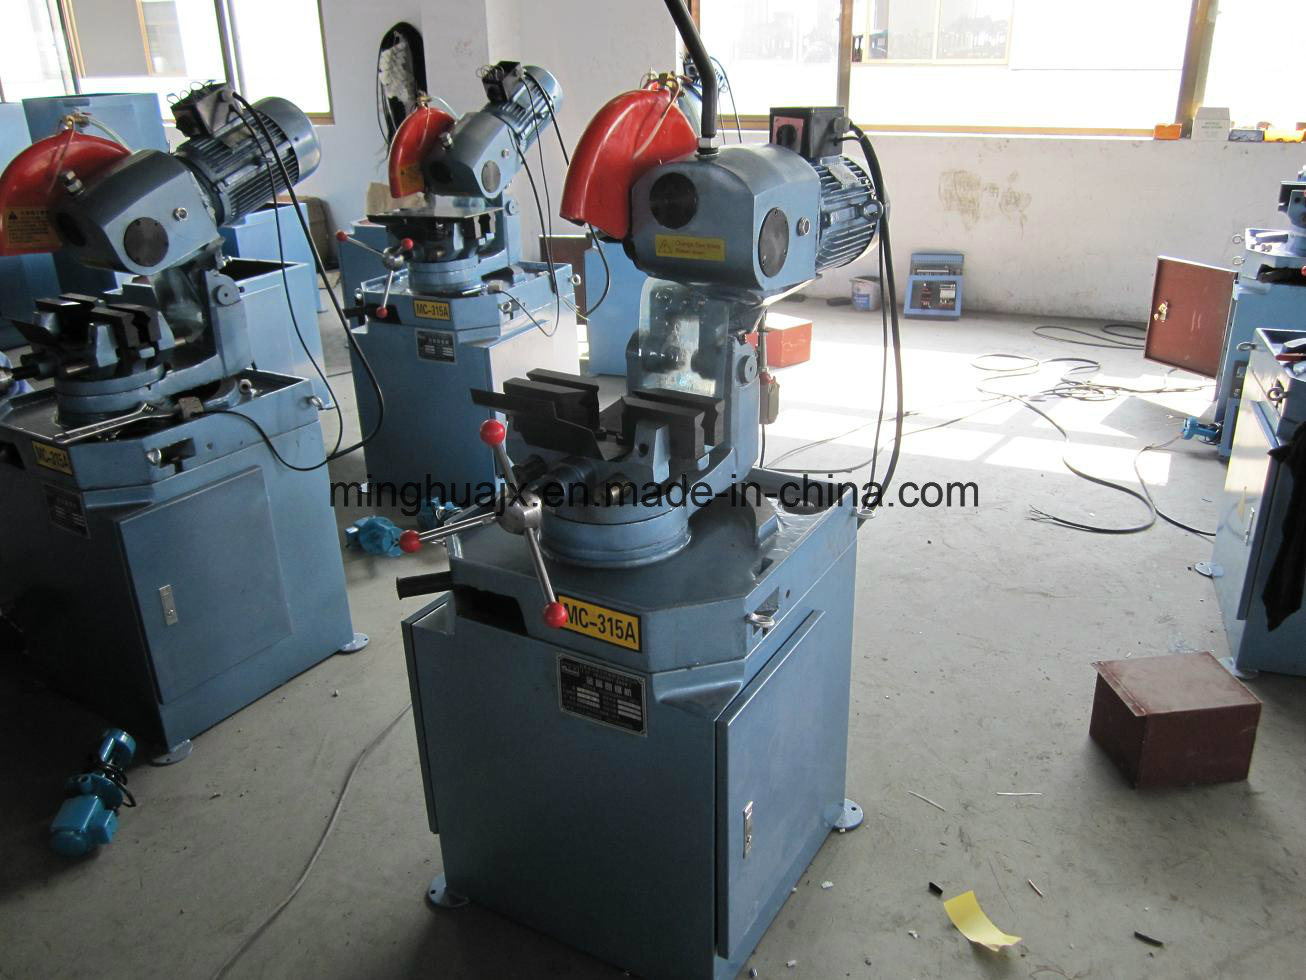 Factory Hot Sale Pipe Cutting Machine Mc-315A